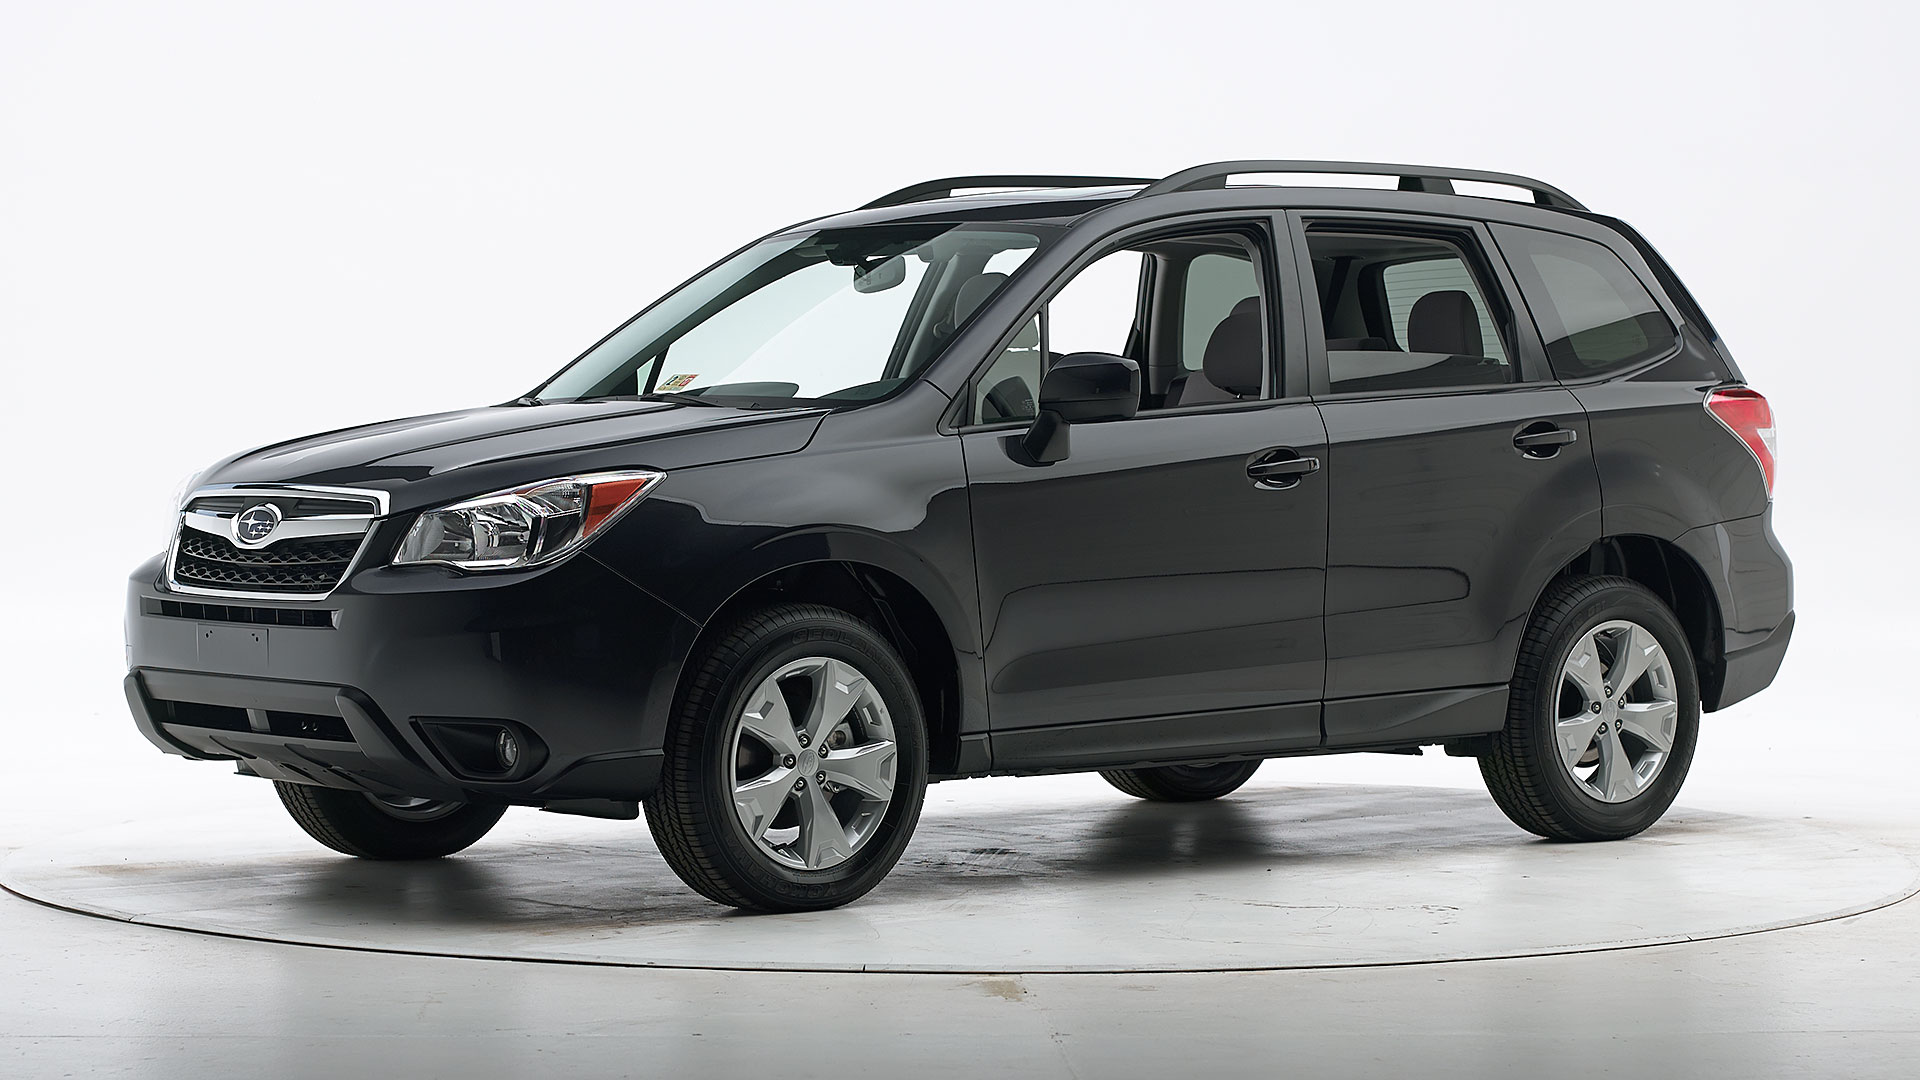 2016 Subaru Forester 4-door SUV